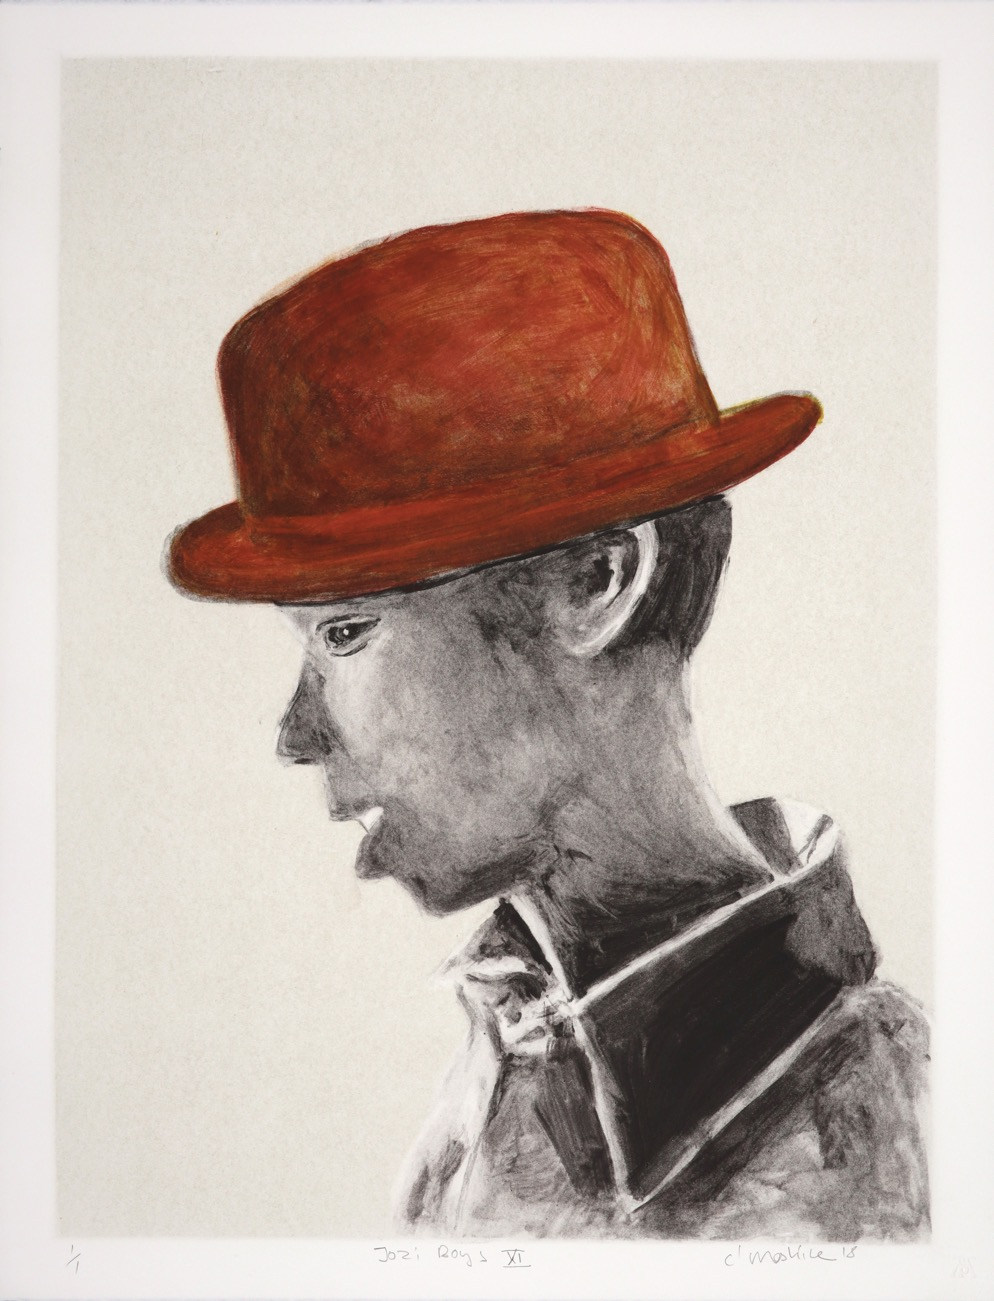 Monochrome profile of a young man with a reddish-brown hat on.